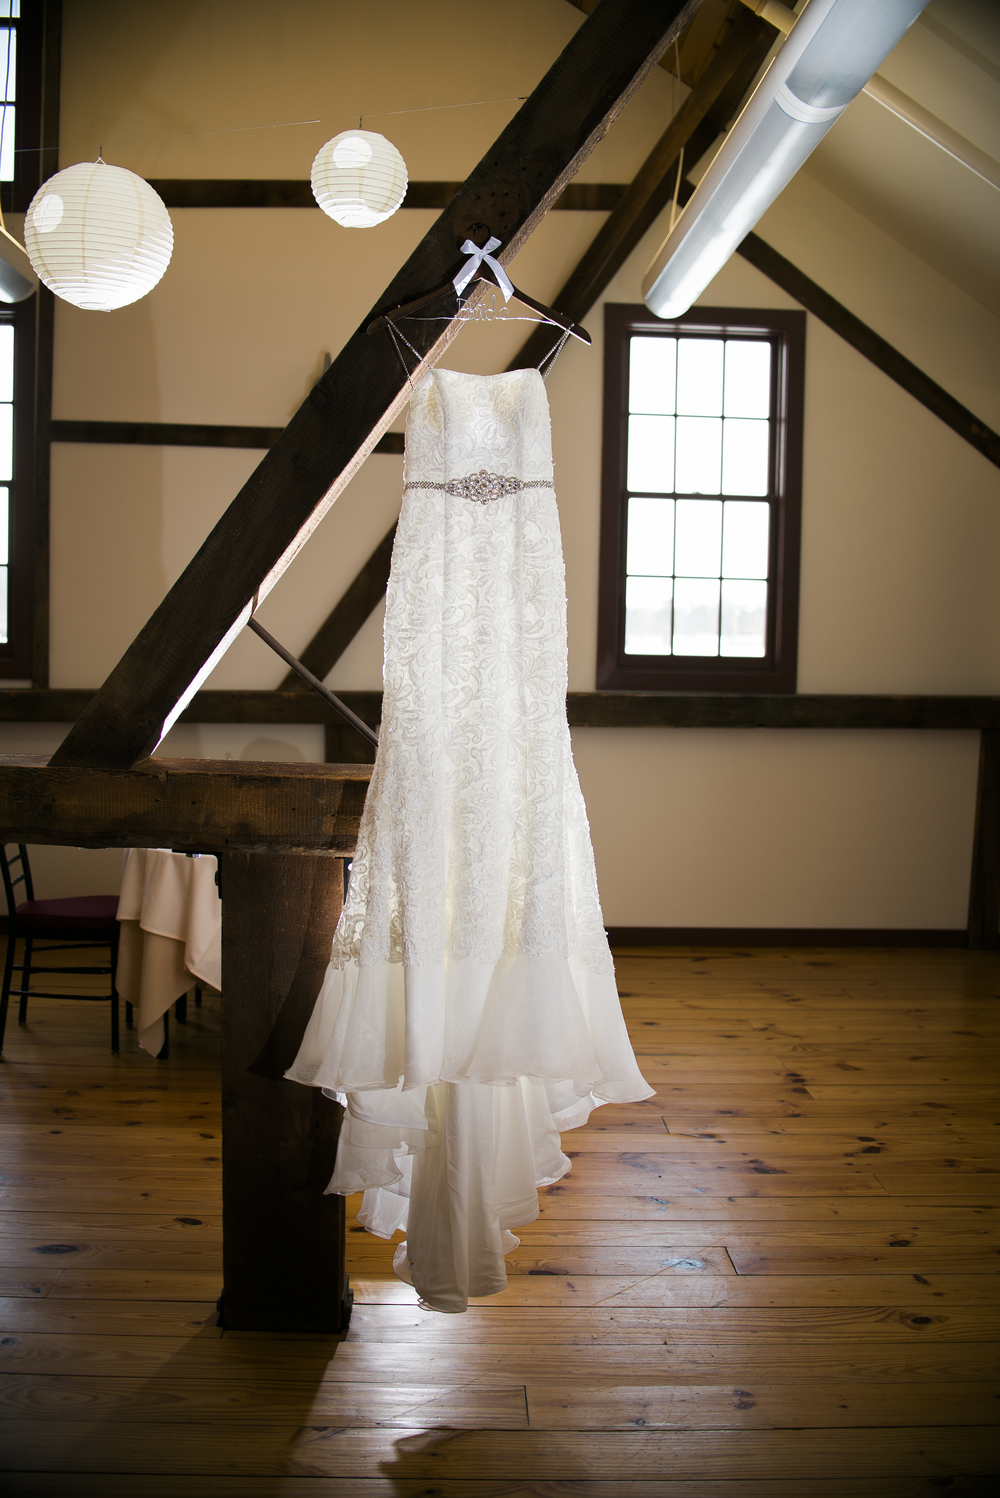 wedding-dress-hanging-up